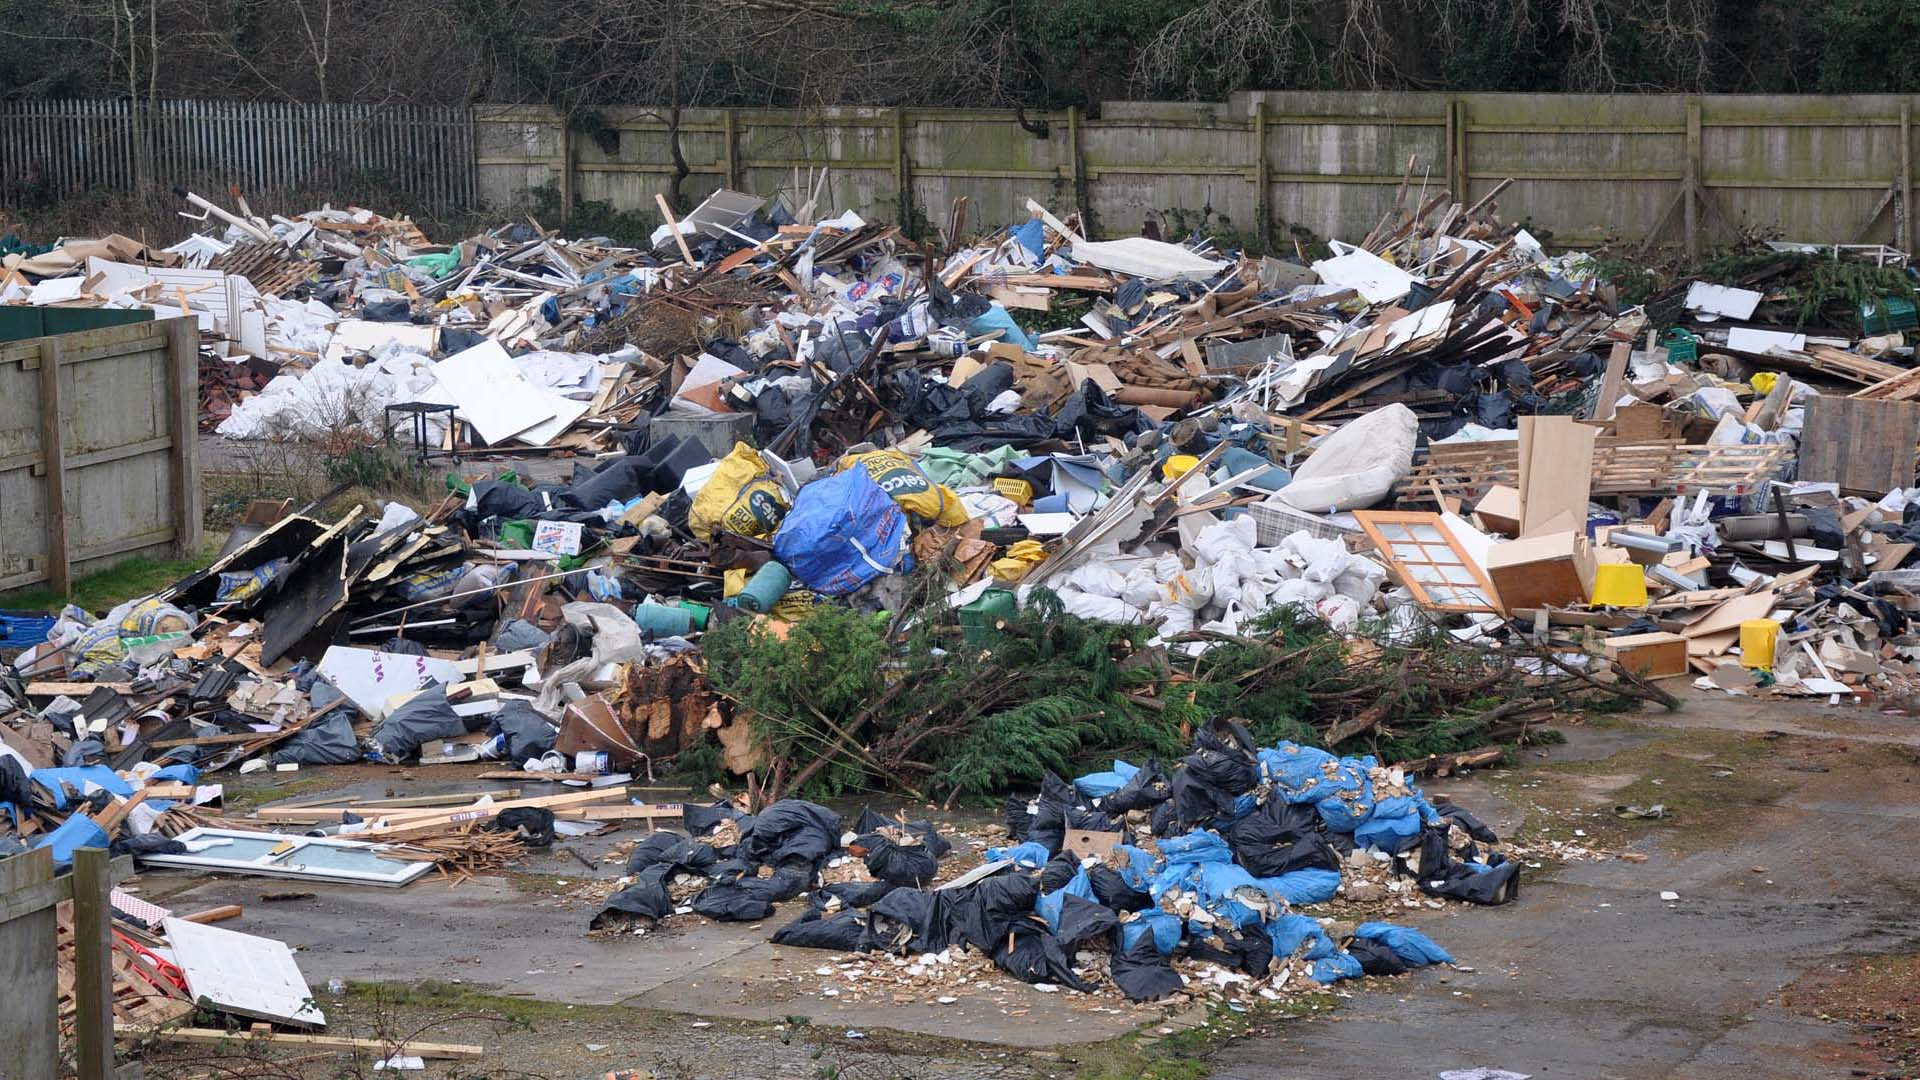 Travellers Return and bring Mass Fly Tipping